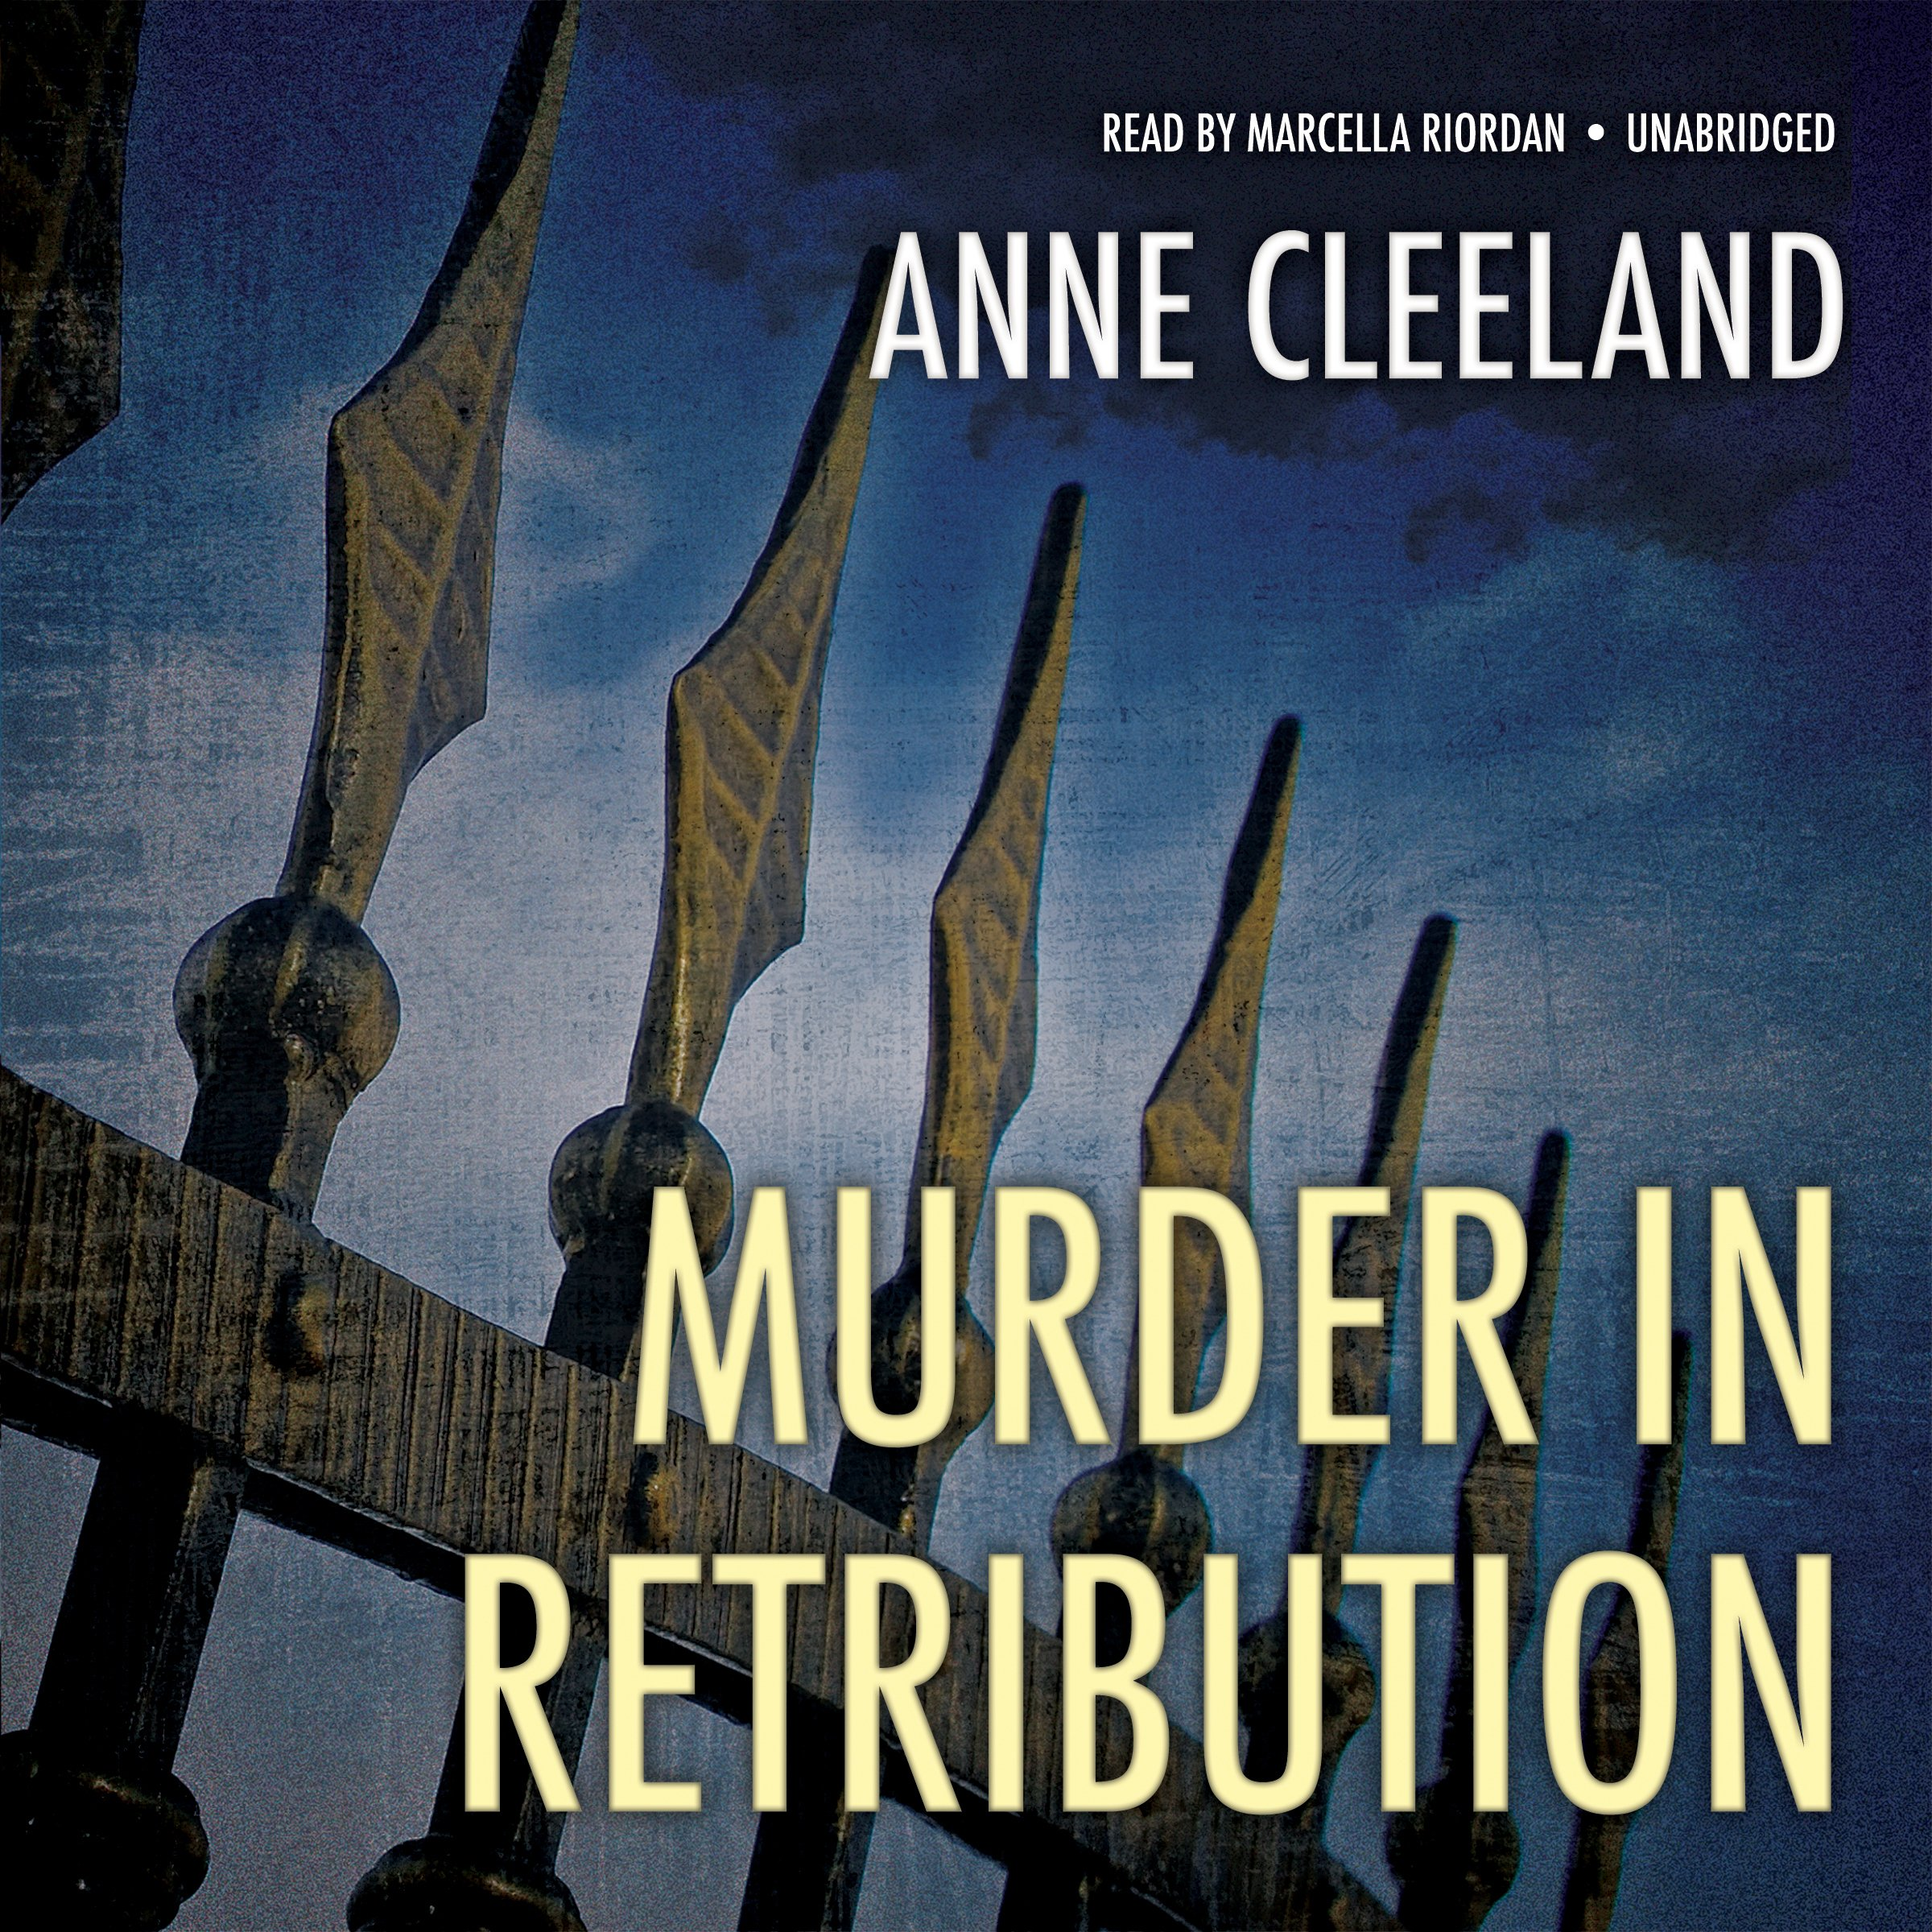 Murder in Retribution (Acton and Doyle New Scotland Yard Mysteries, Book 2)  (The New Scotland Yard Mystery): Anne Cleeland: 9781483001616: Amazon.com:  Books